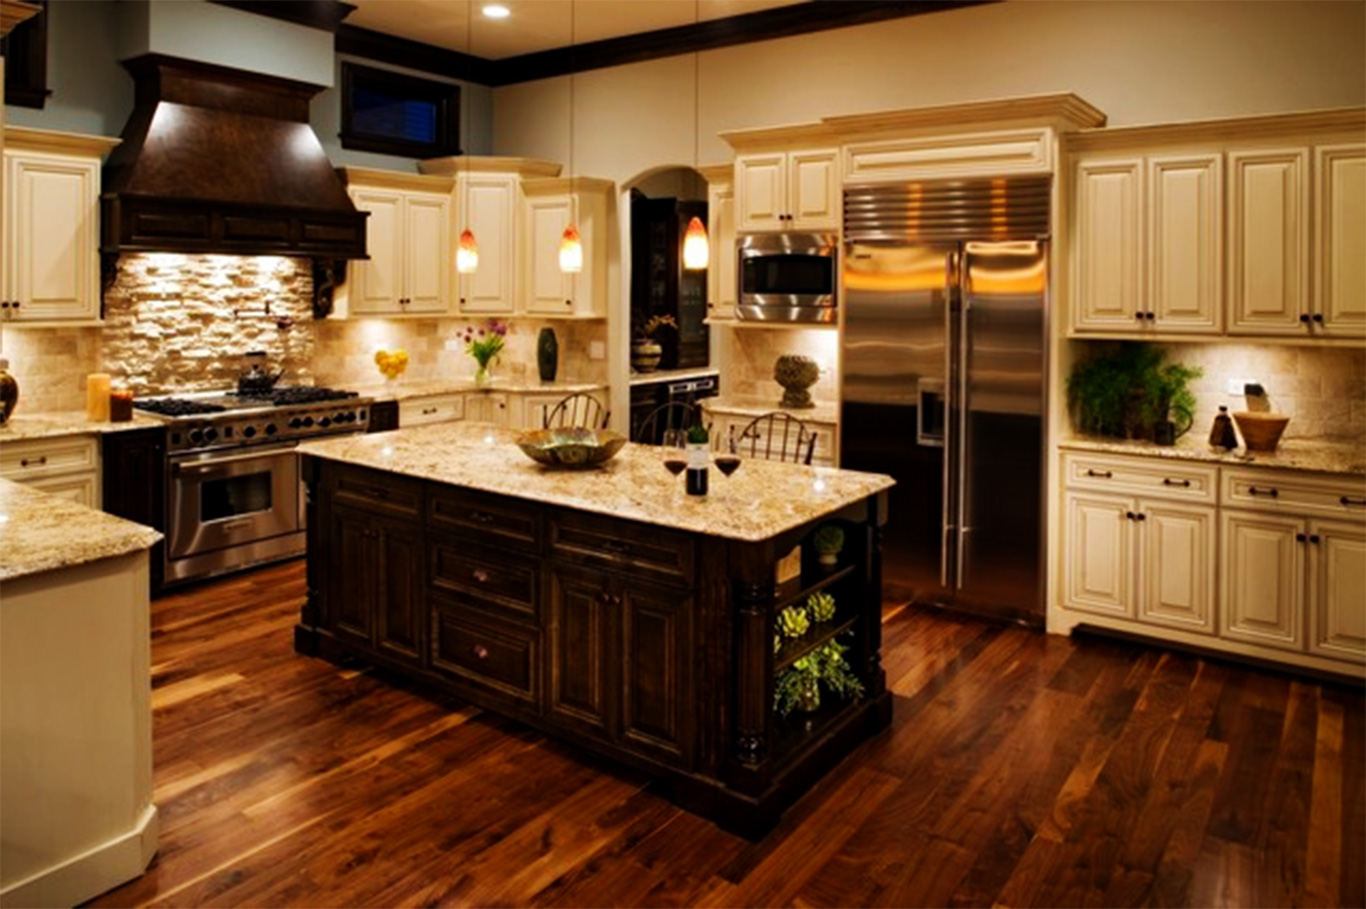 11 awesome type of kitchen design ideas for Kichan dizain